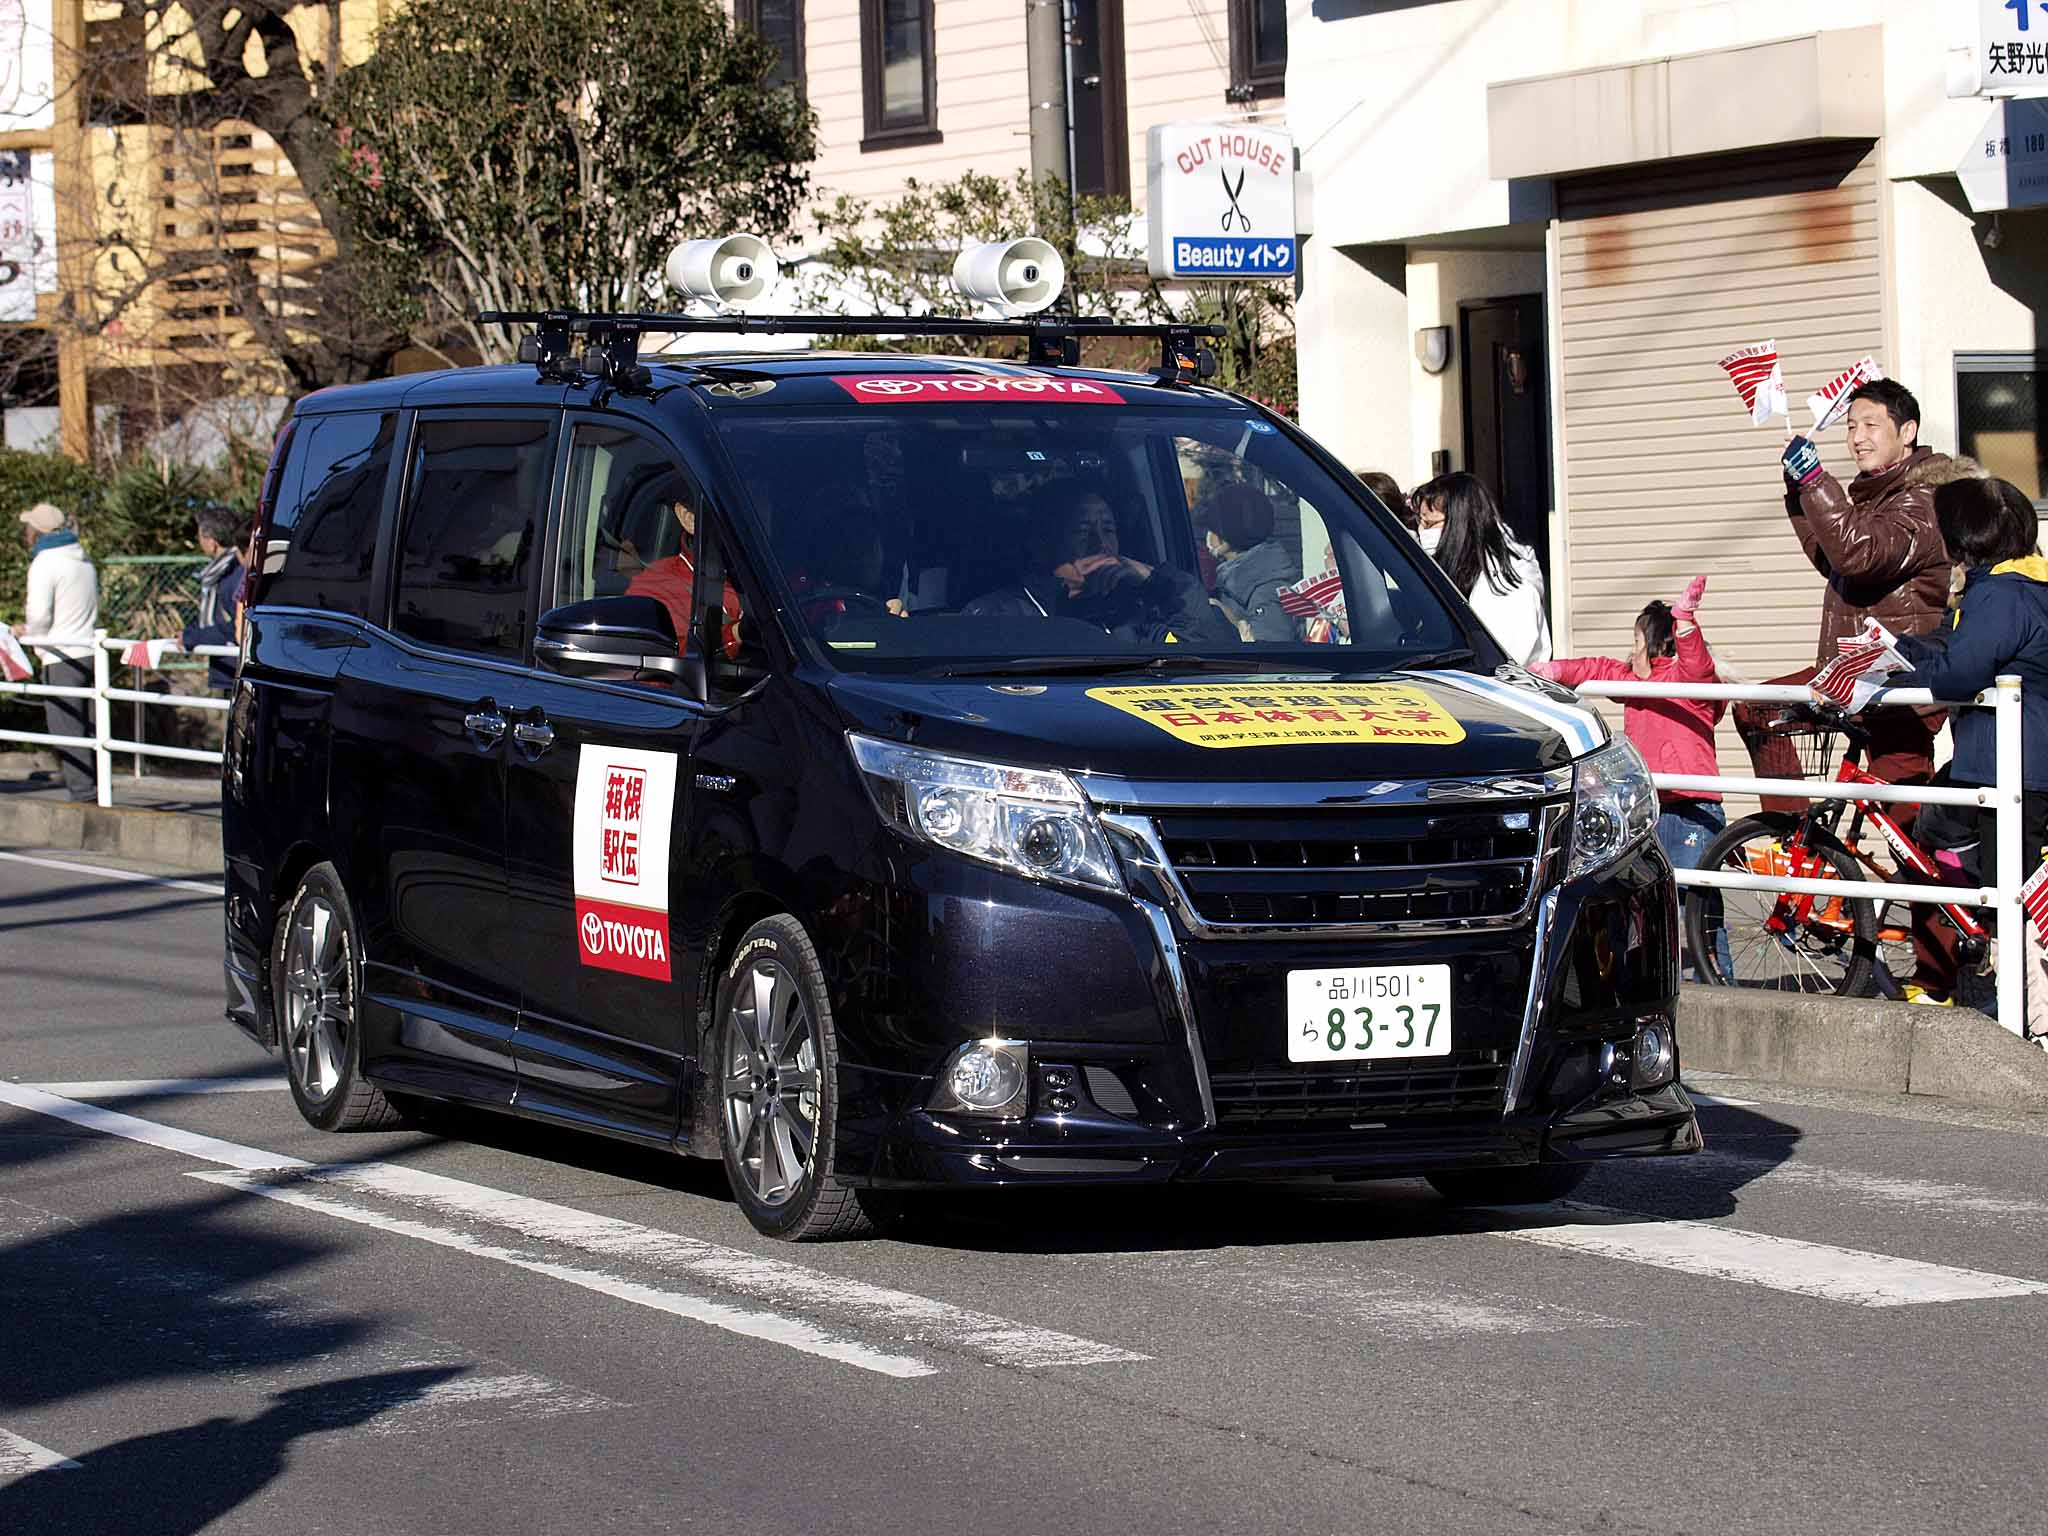 Description 2015 Hakone Ekiden Team support car Esquire TRD Sportivo